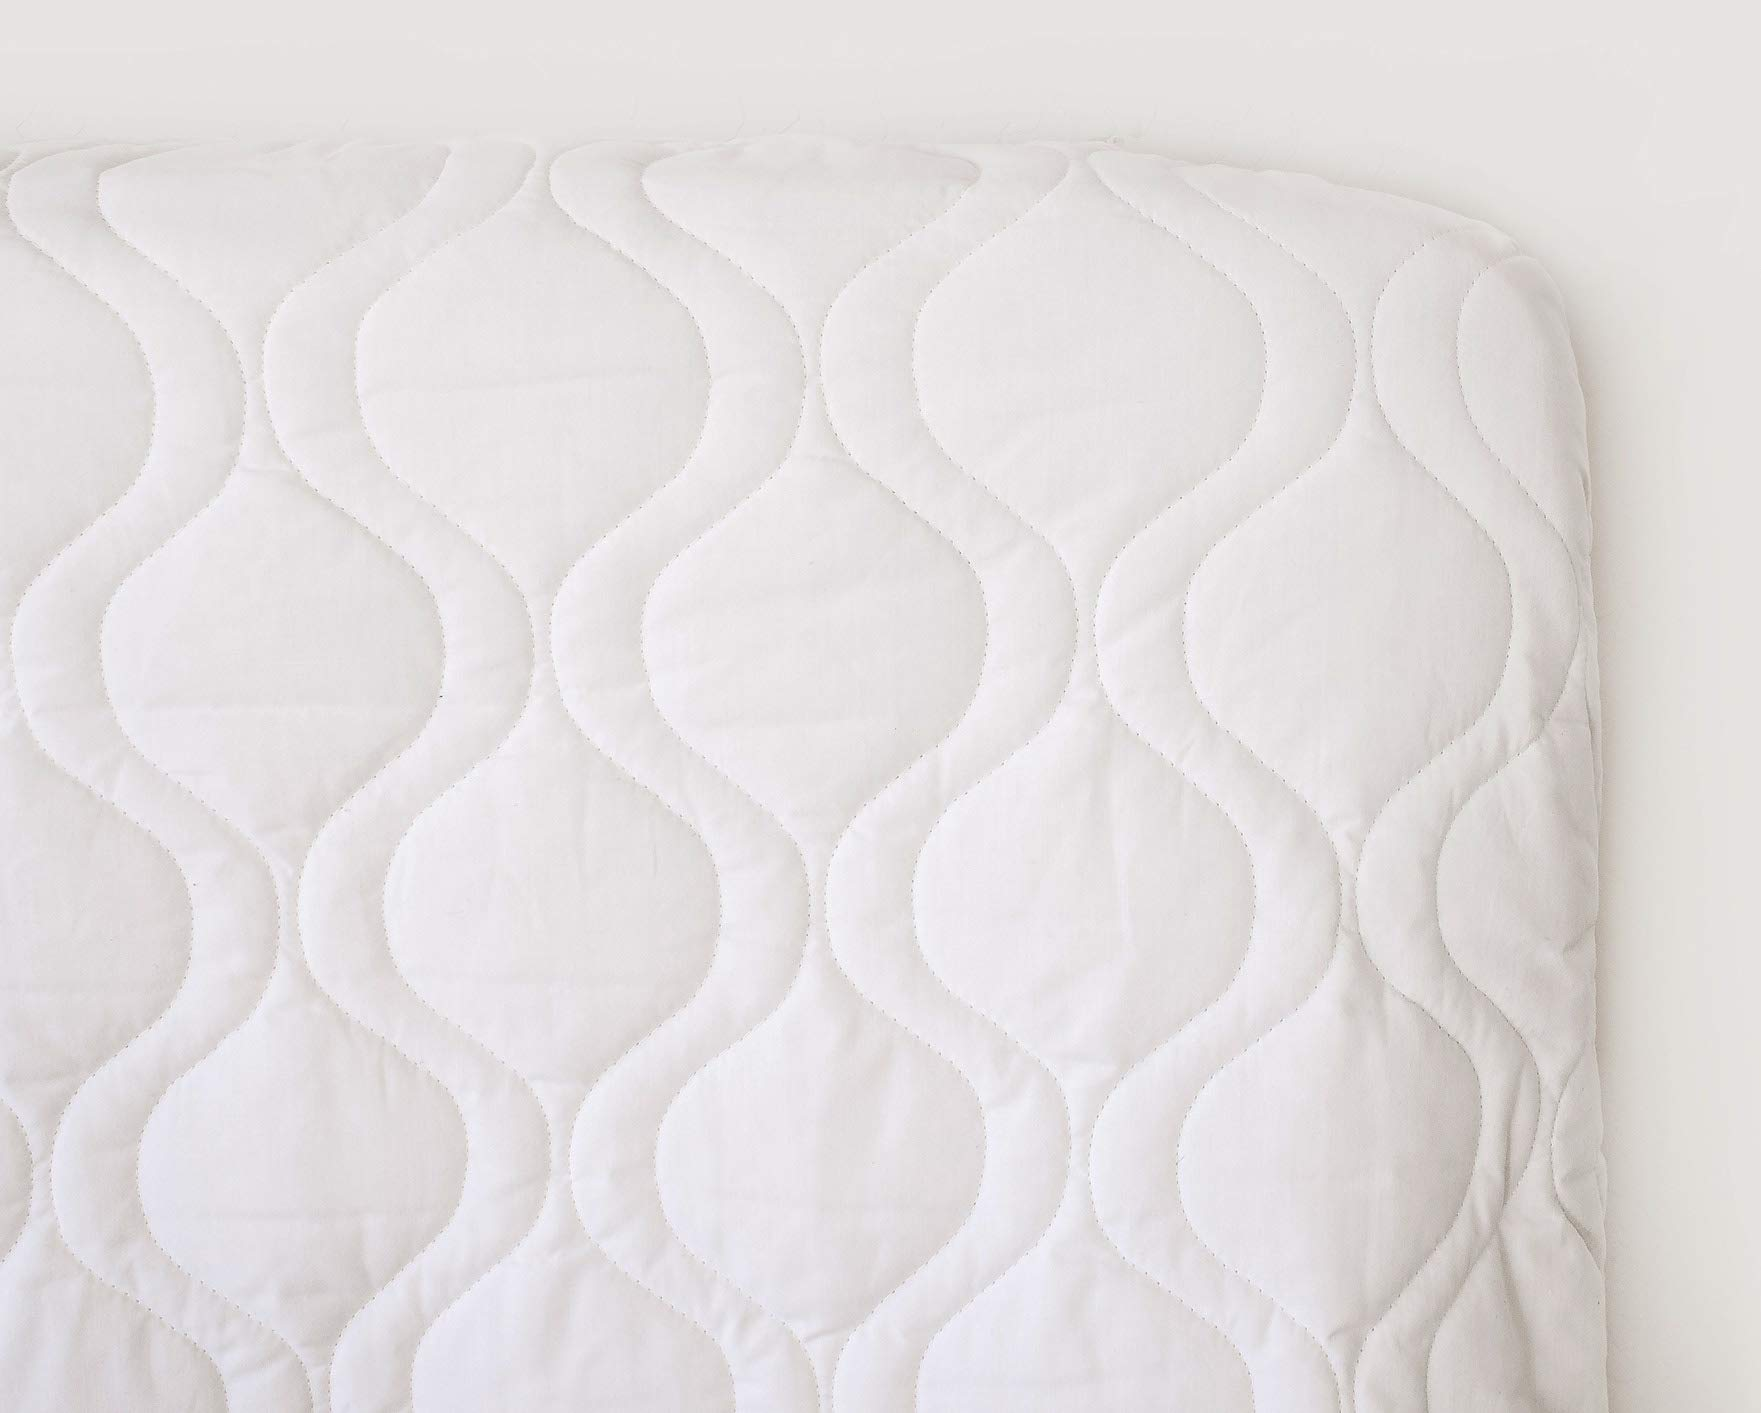 SheetWorld Fitted Pack N Play (Graco) Sheet - White Quilted - Made In USA